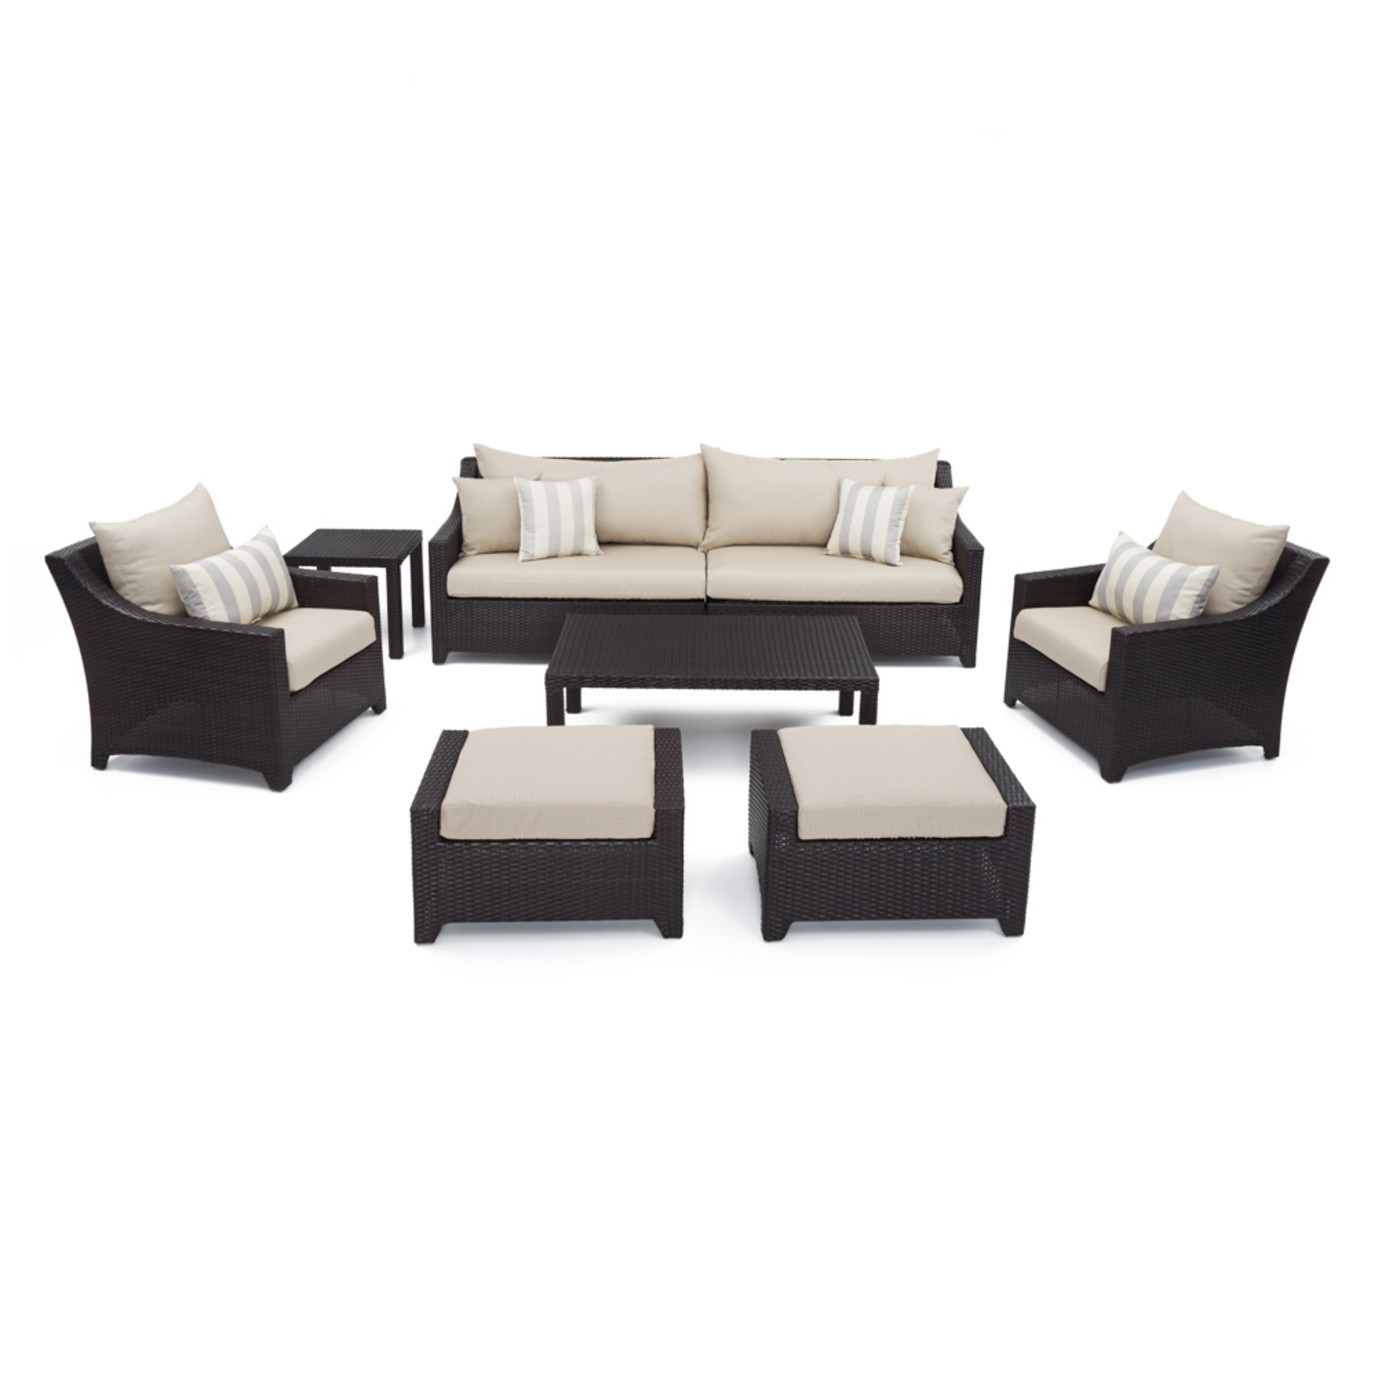 Deco™ 8 Piece Sofa and Club Chair Set - Slate Gray